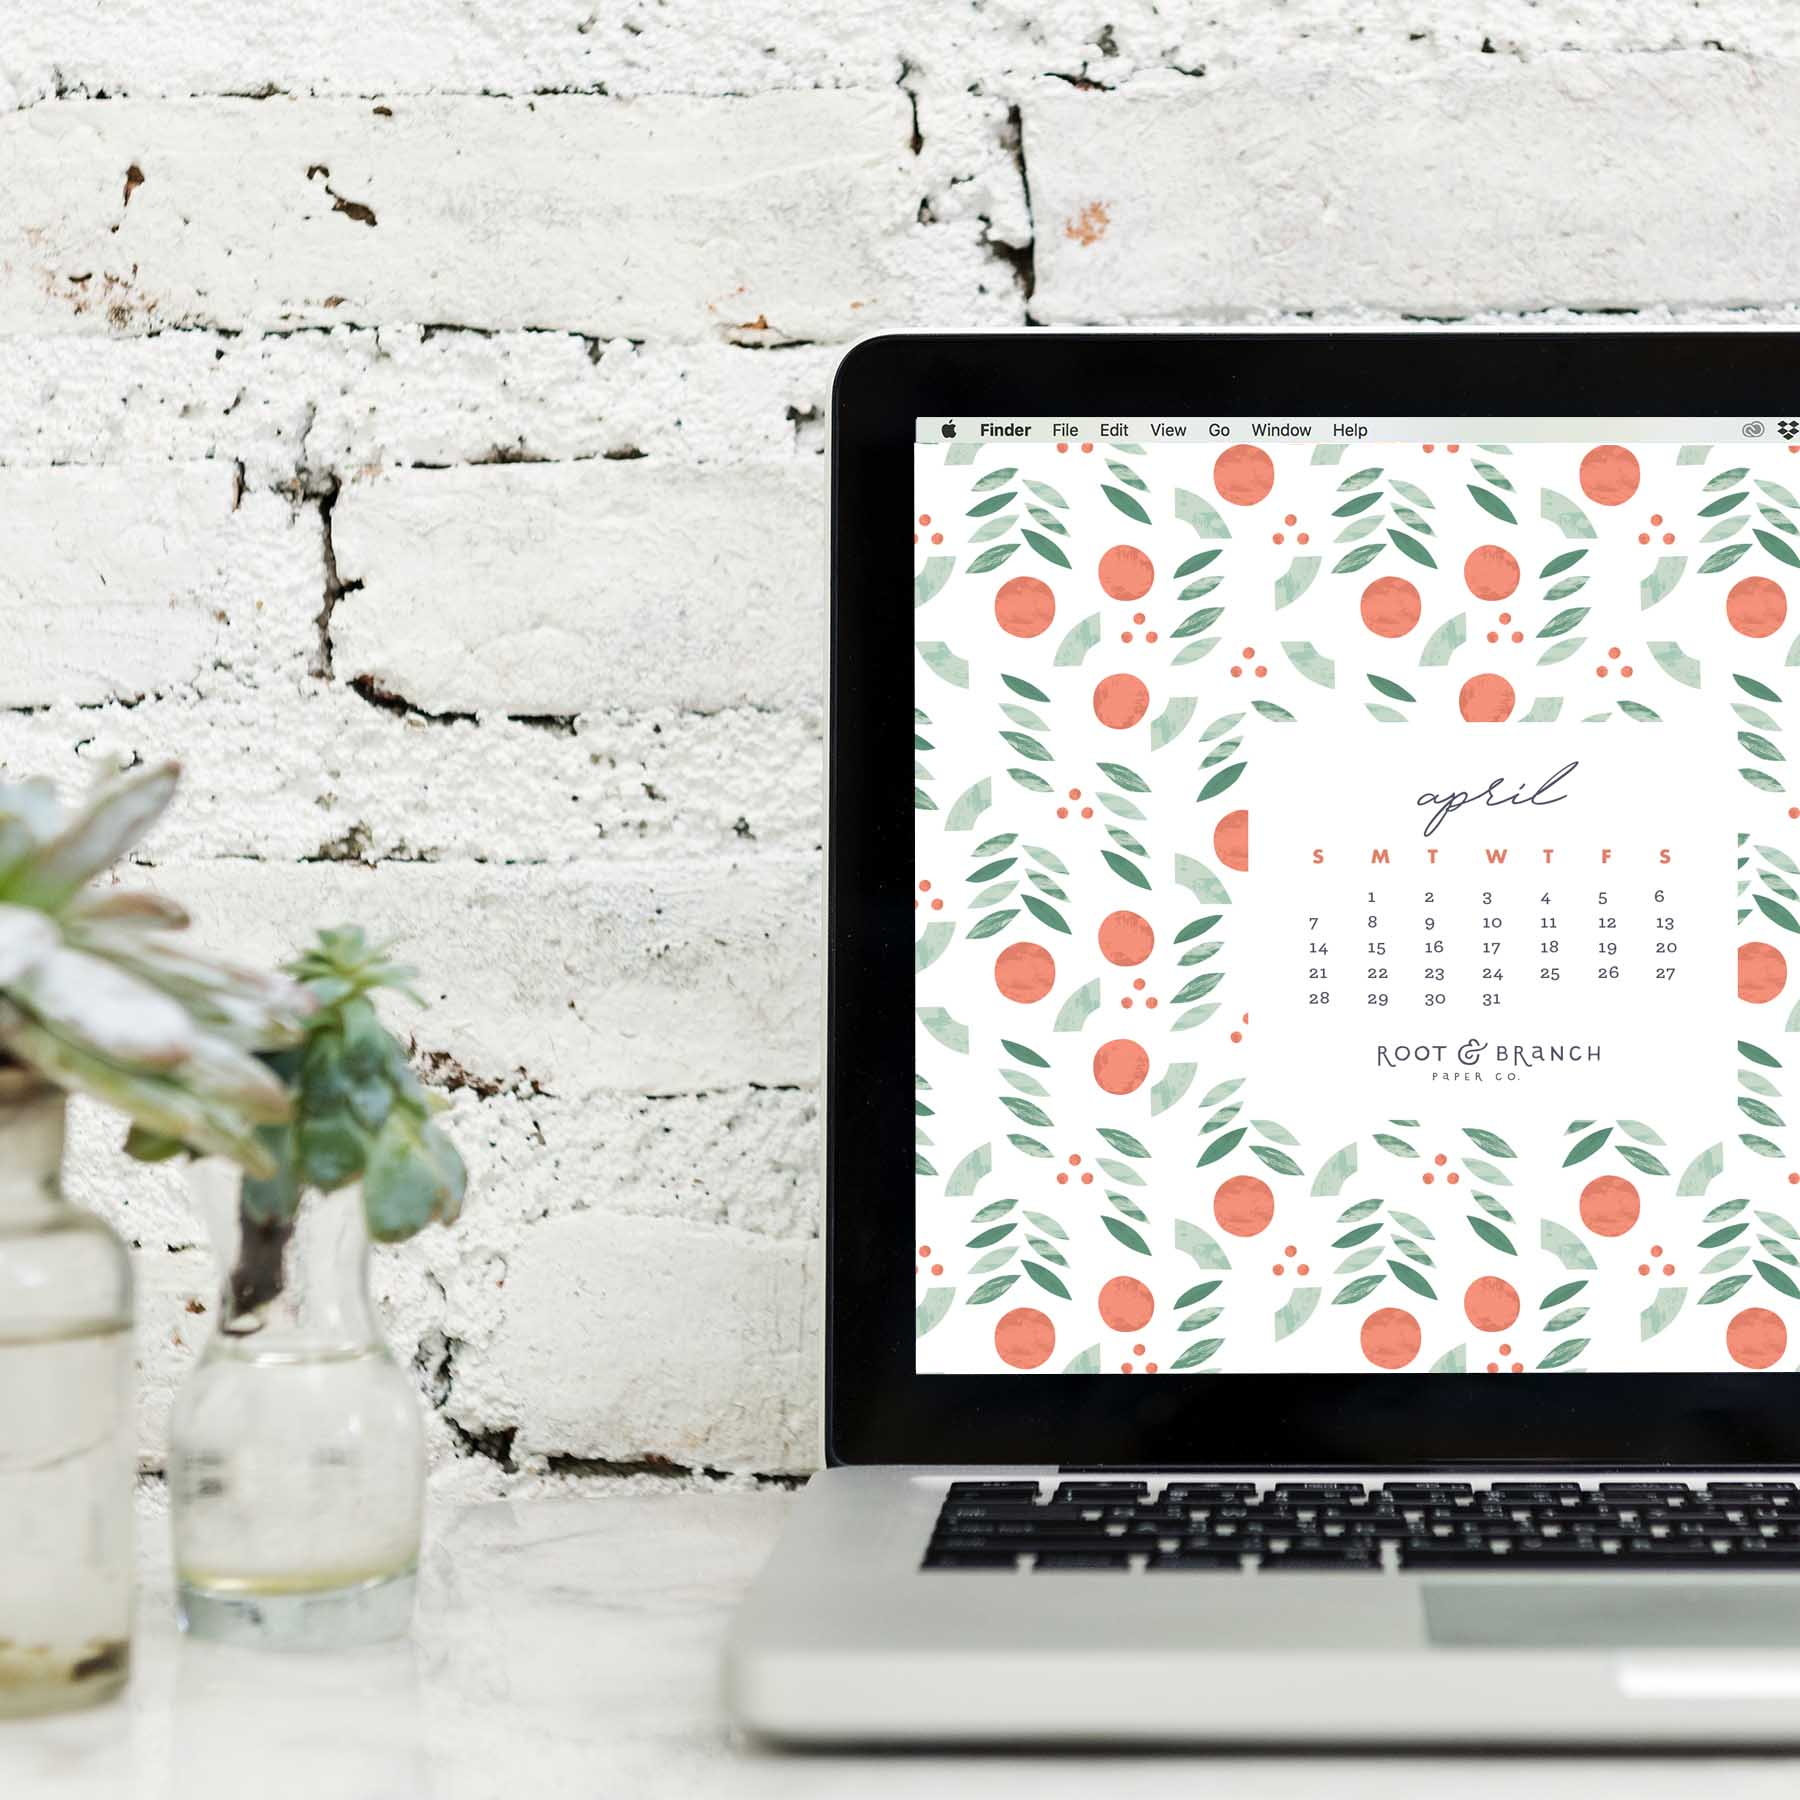 April 2019 Digital Wallpapers from Root & Branch Paper Co